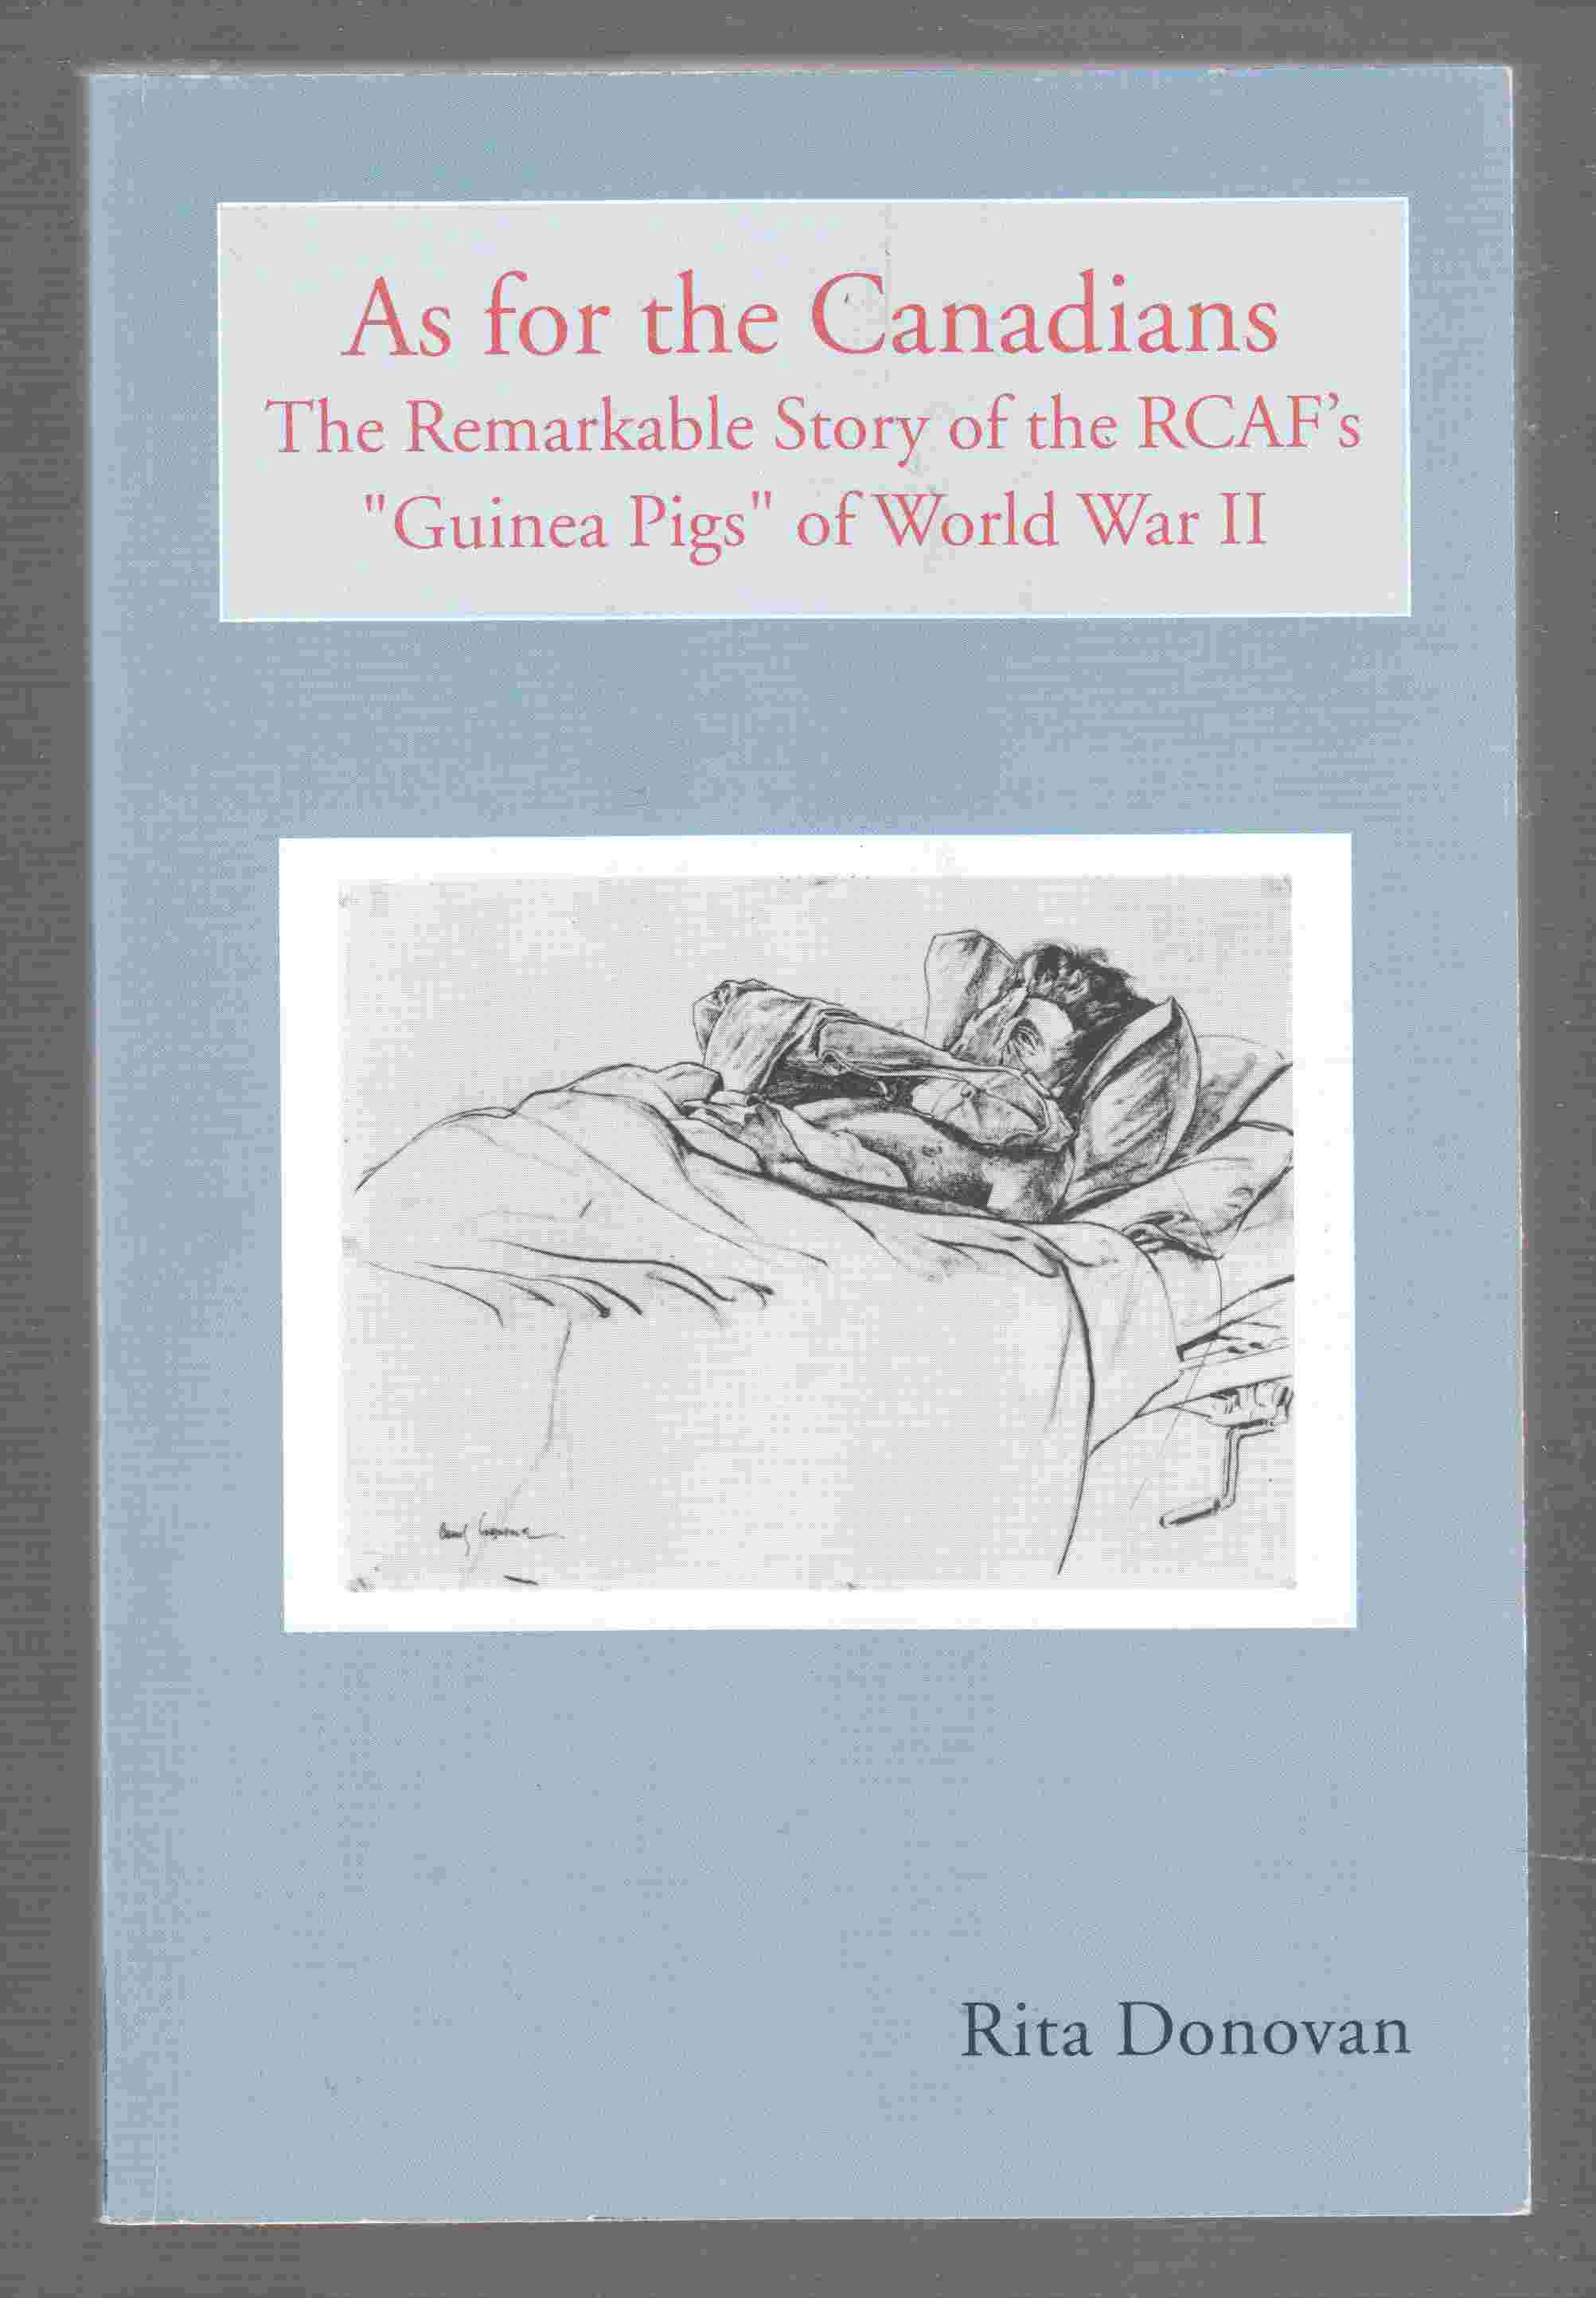 Image for As for the Canadians The Remarkable Story of the RCAF's Guinea Pigs of World War II